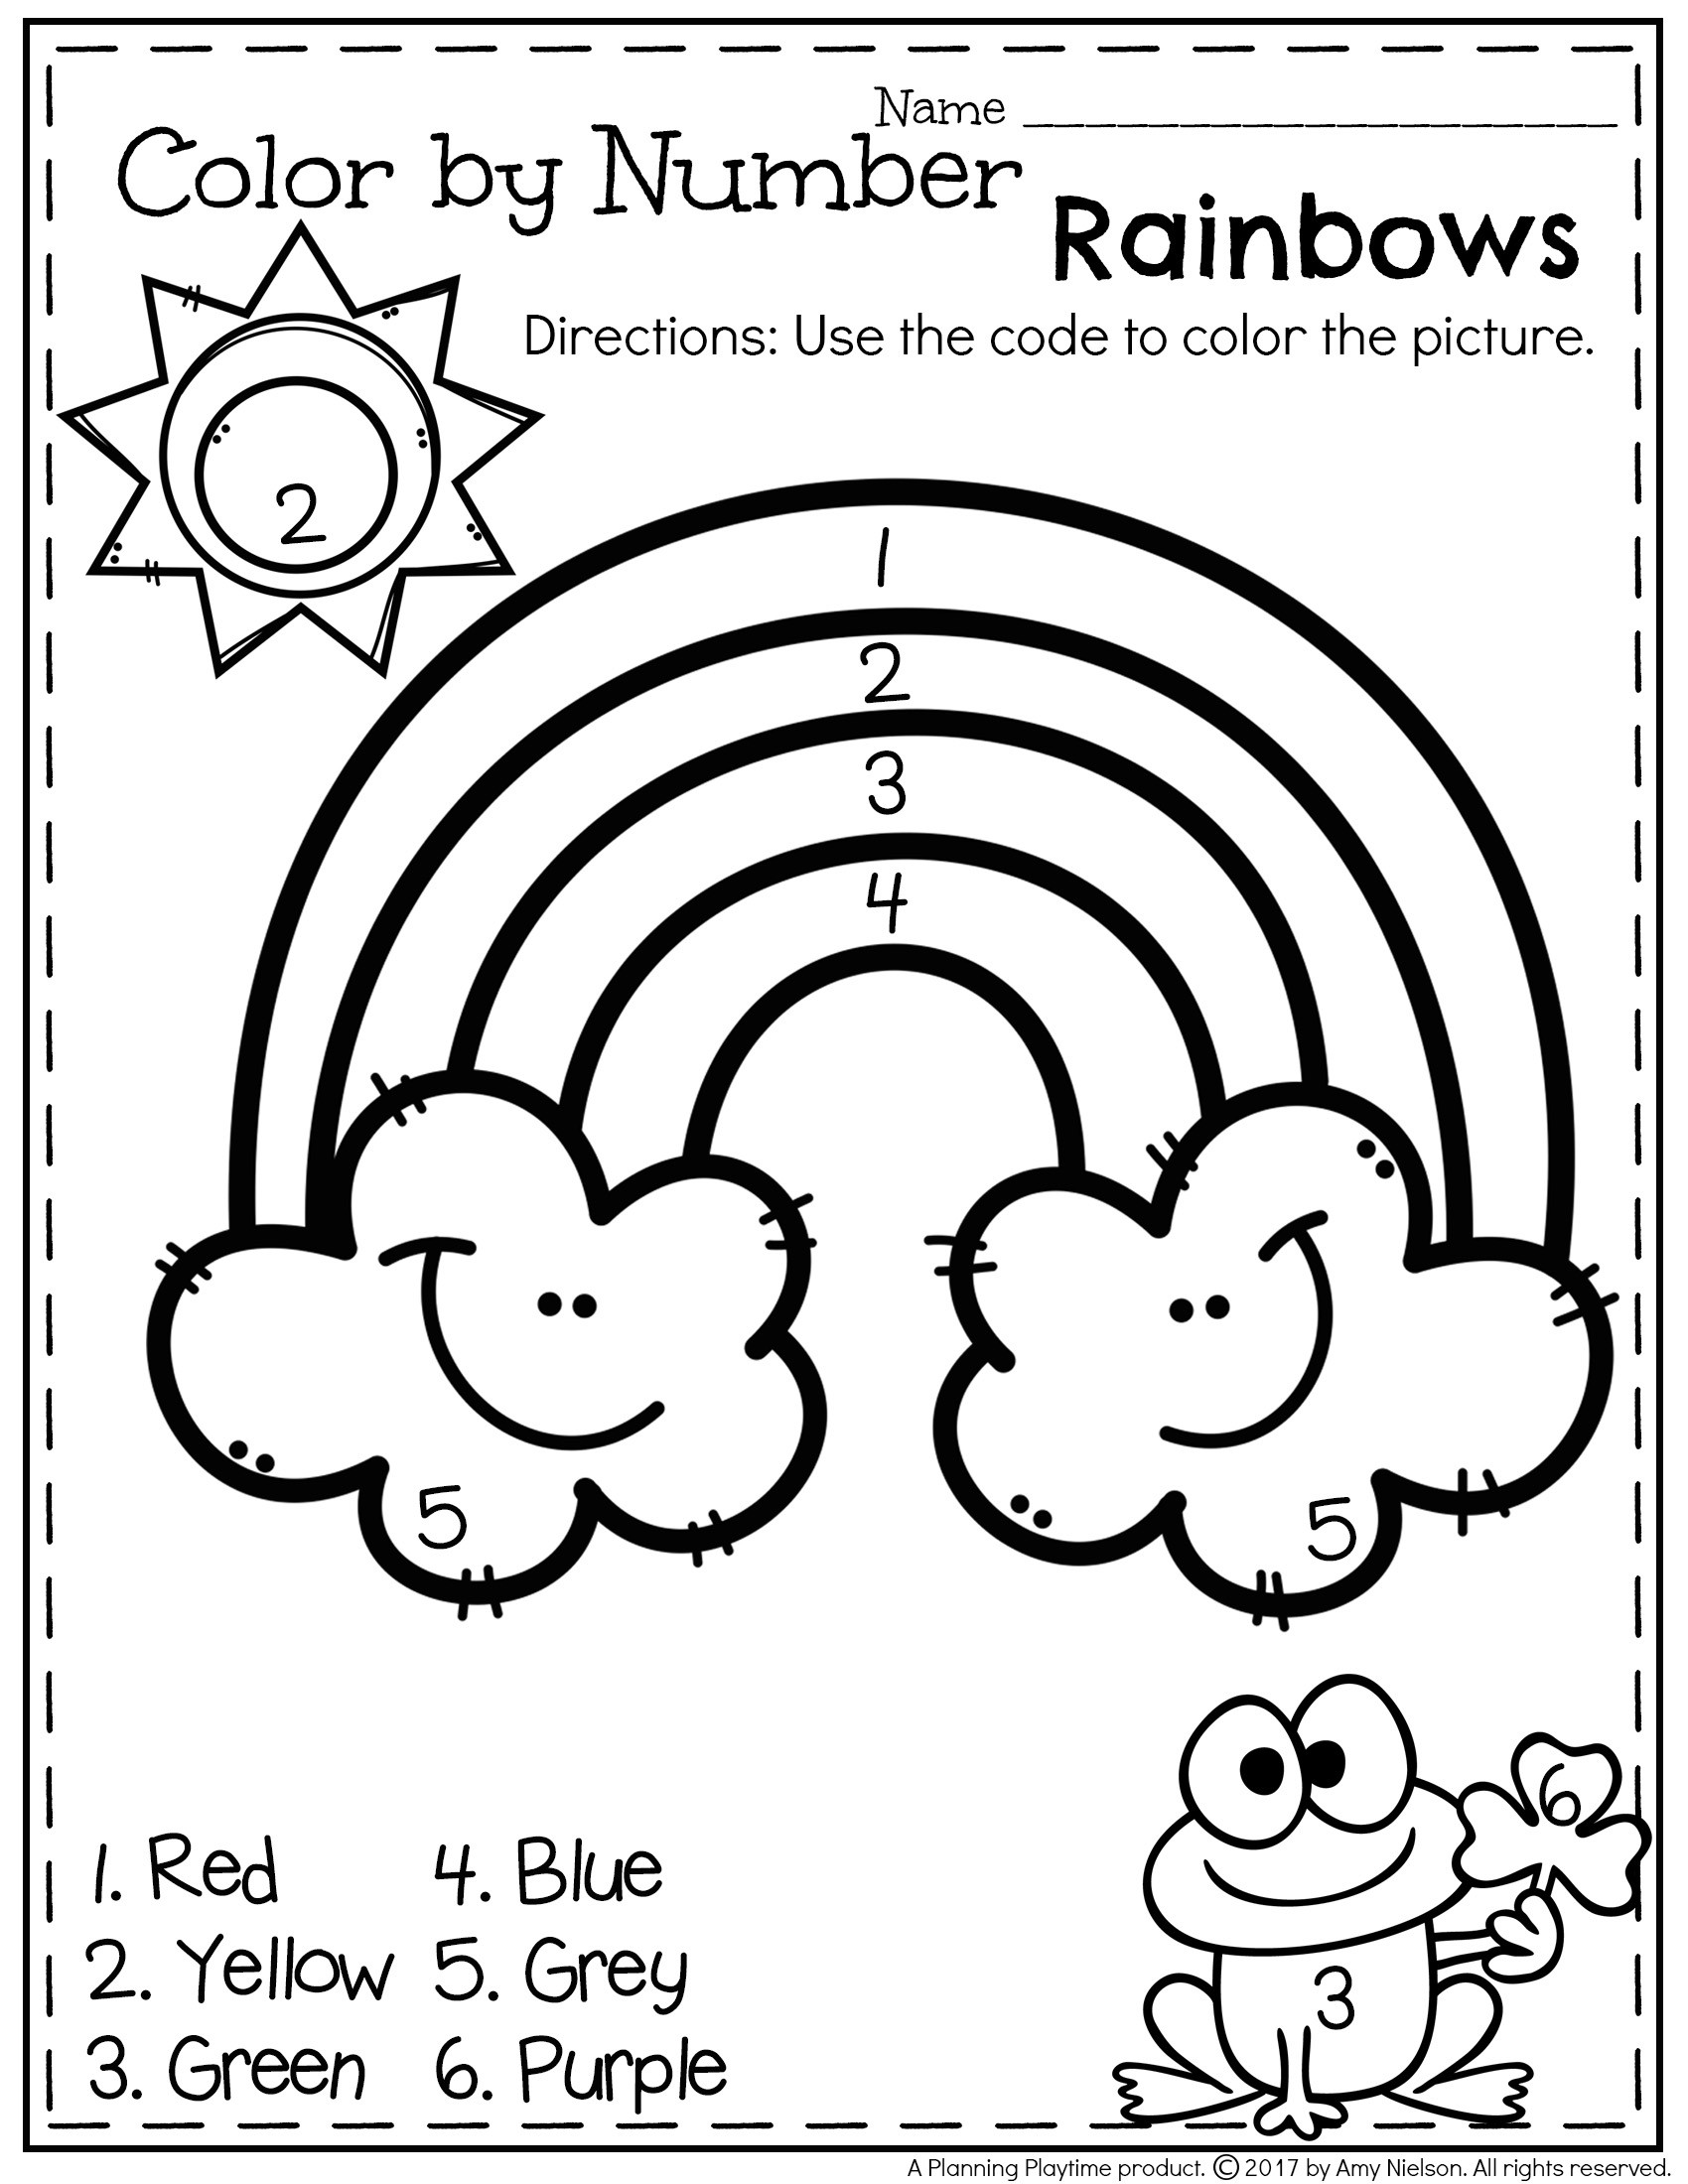 Rainbow Worksheets Preschool March Preschool Worksheets Planning Playtime